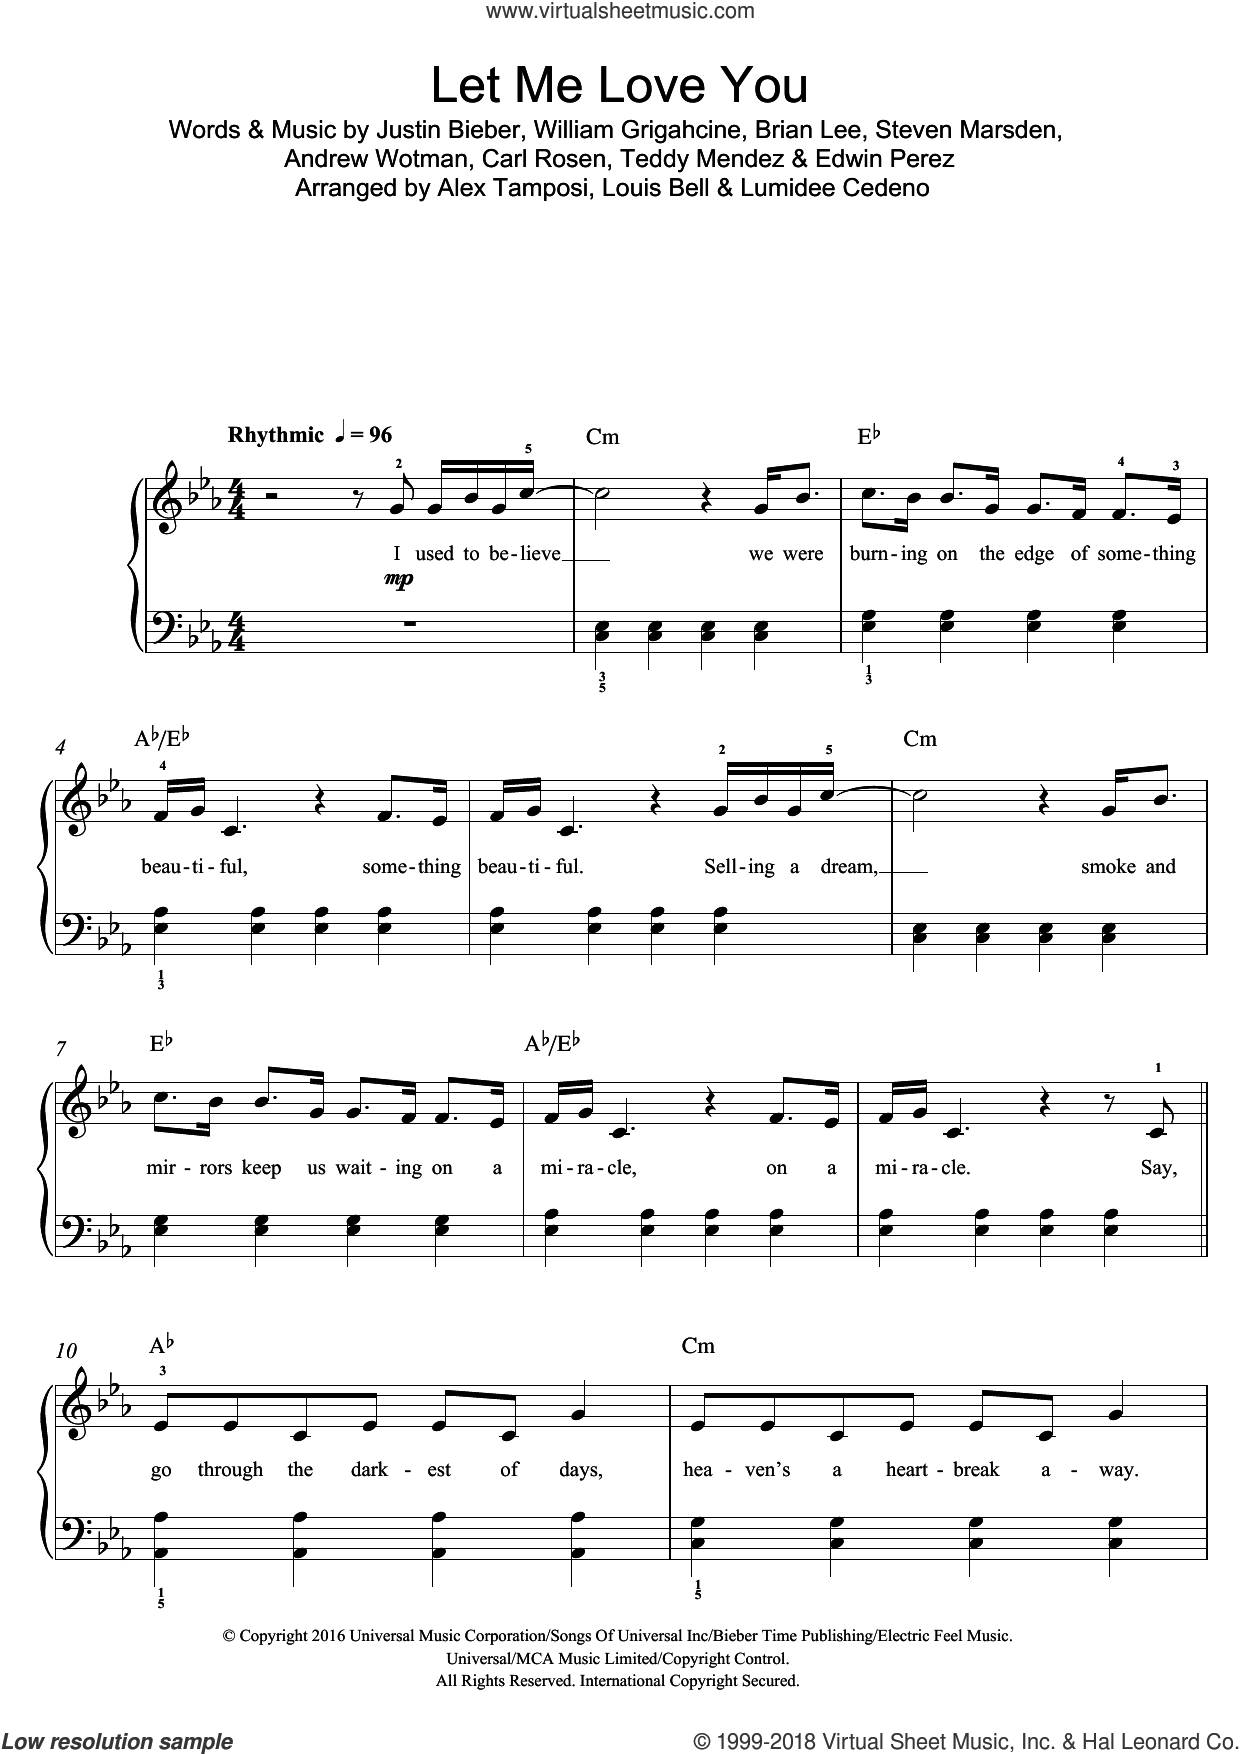 Let Me Love You (featuring Justin Bieber) sheet music for piano solo (beginners) by DJ Snake, Andrew Wotman, Brian Lee, Carl Rosen, Edwin Perez, Justin Bieber, Steven Marsden, Teddy Mendez and William Grigahcine, beginner piano (beginners)